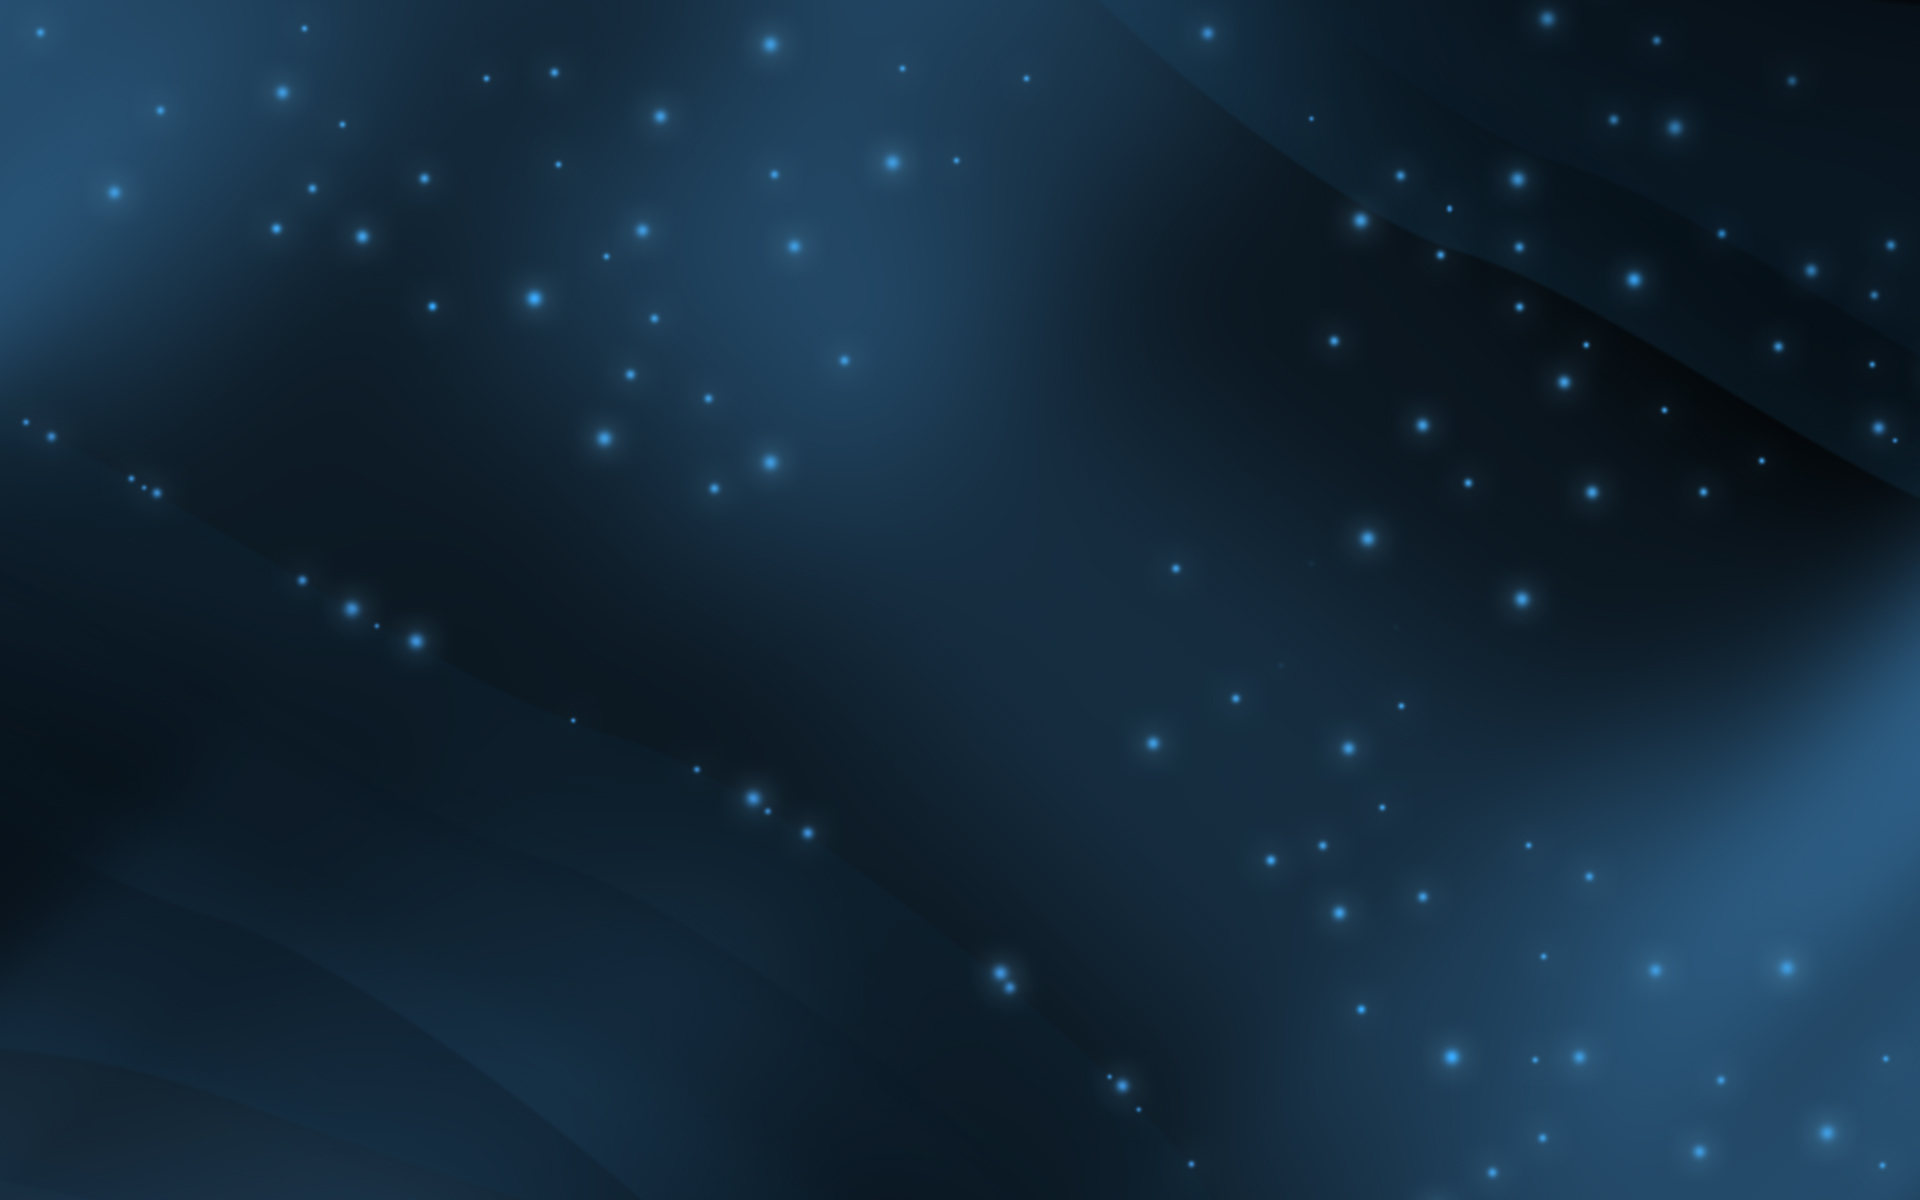 Here is a background I built that I turned into a wallpaper with the 1920x1200